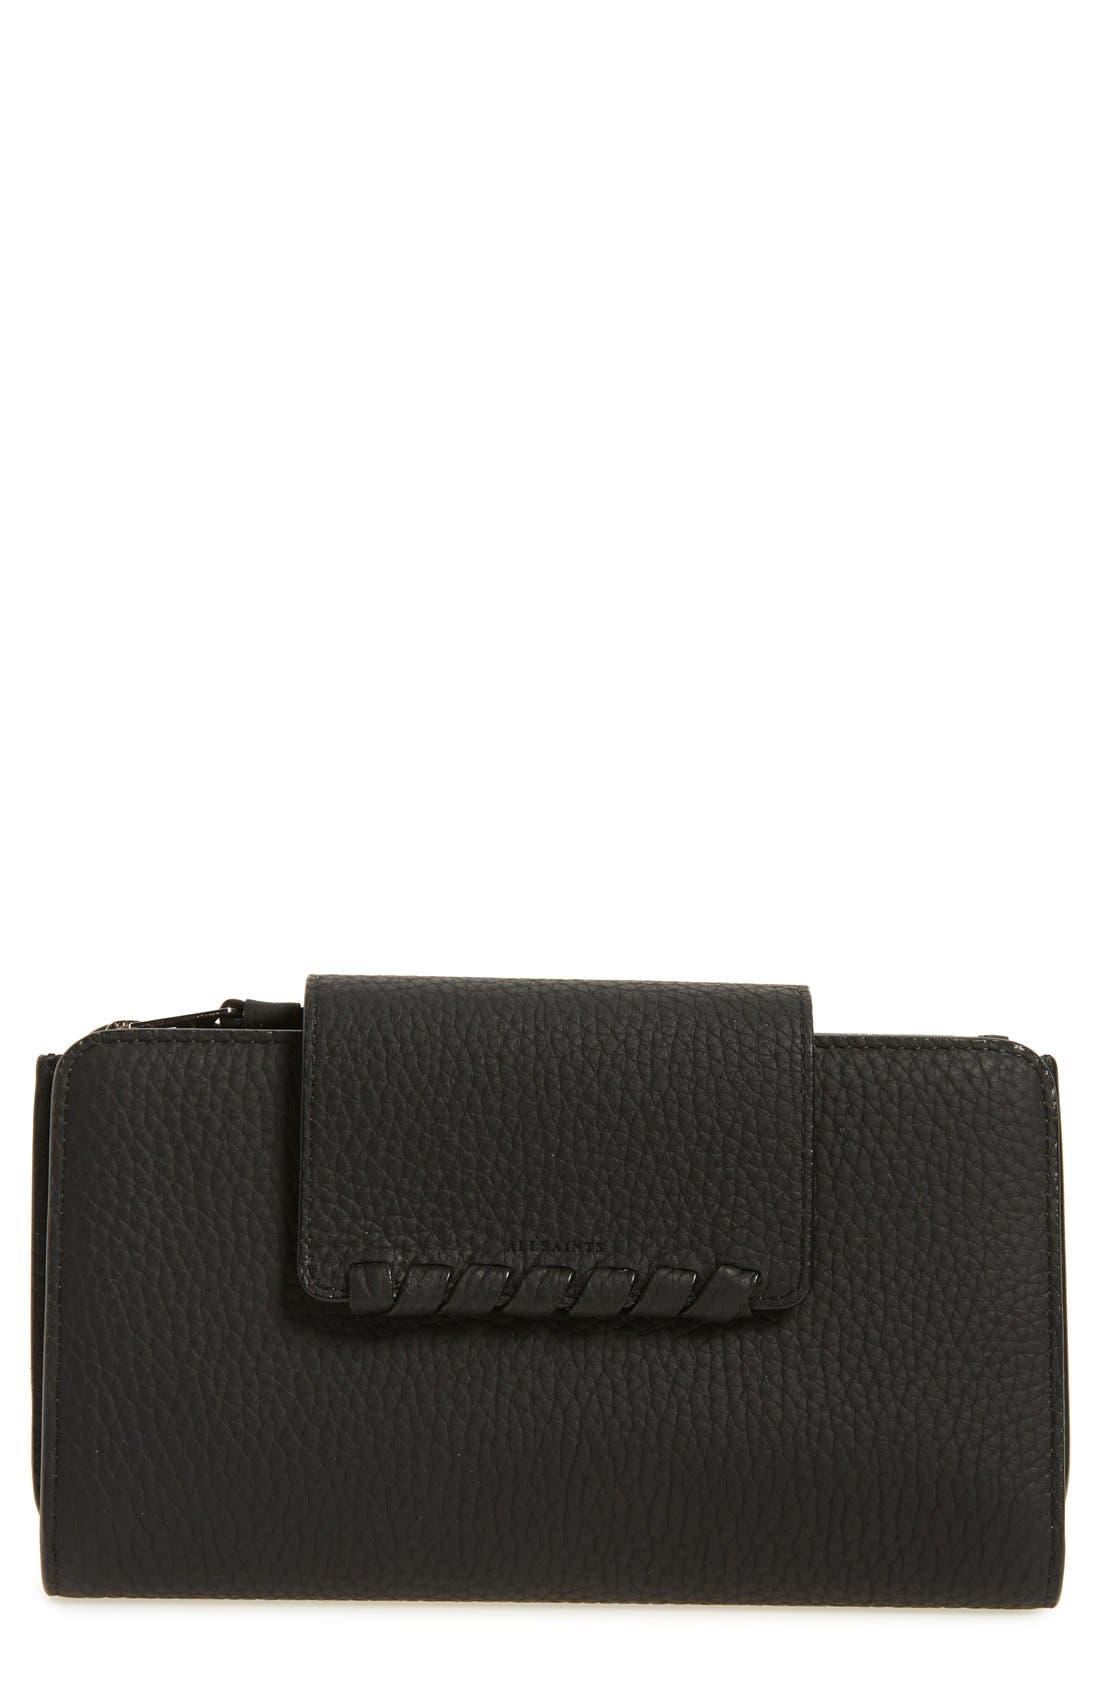 ALLSAINTS Kita Japanese Leather Wallet